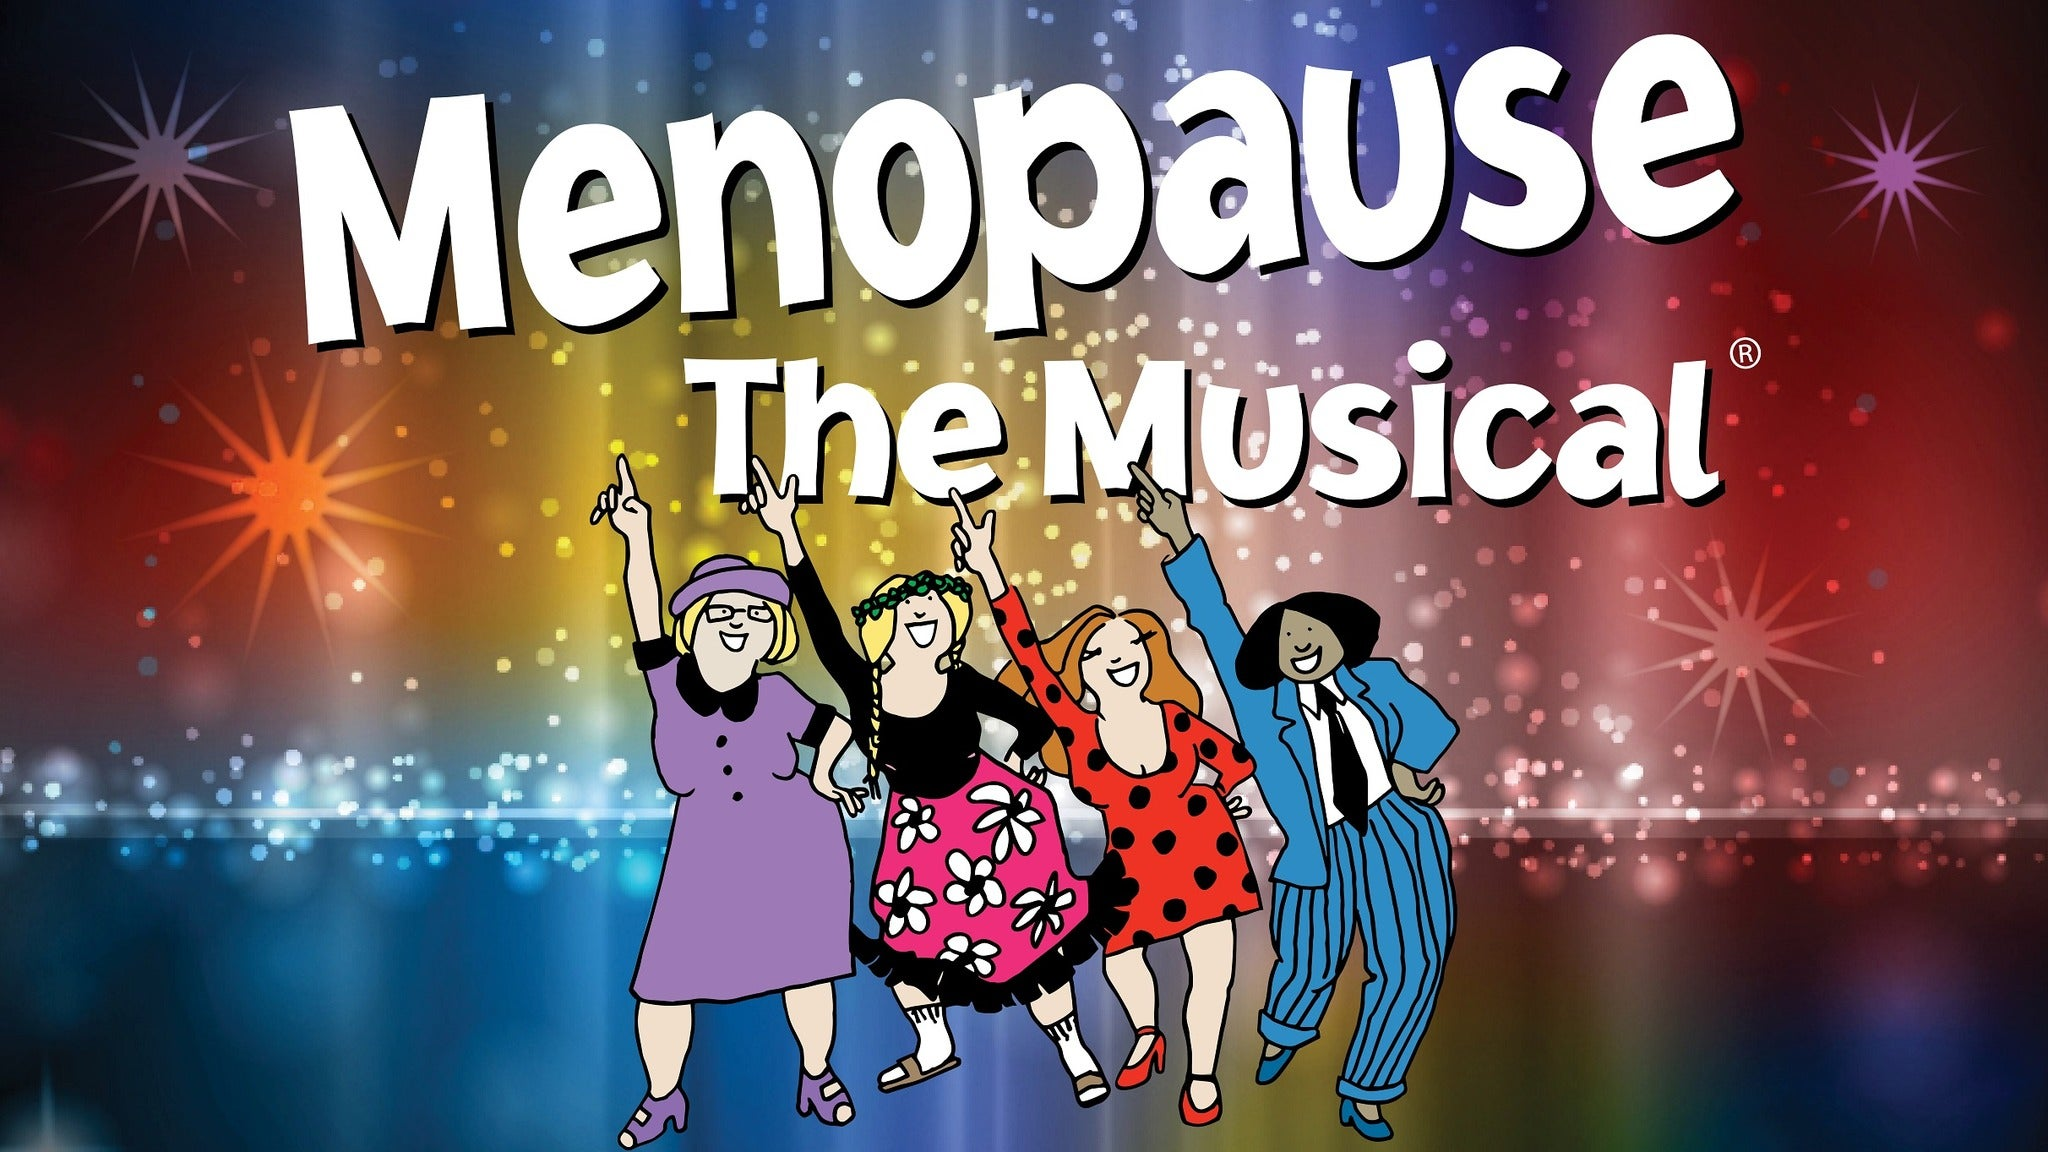 Menopause The Musical at Bergen Performing Arts Center